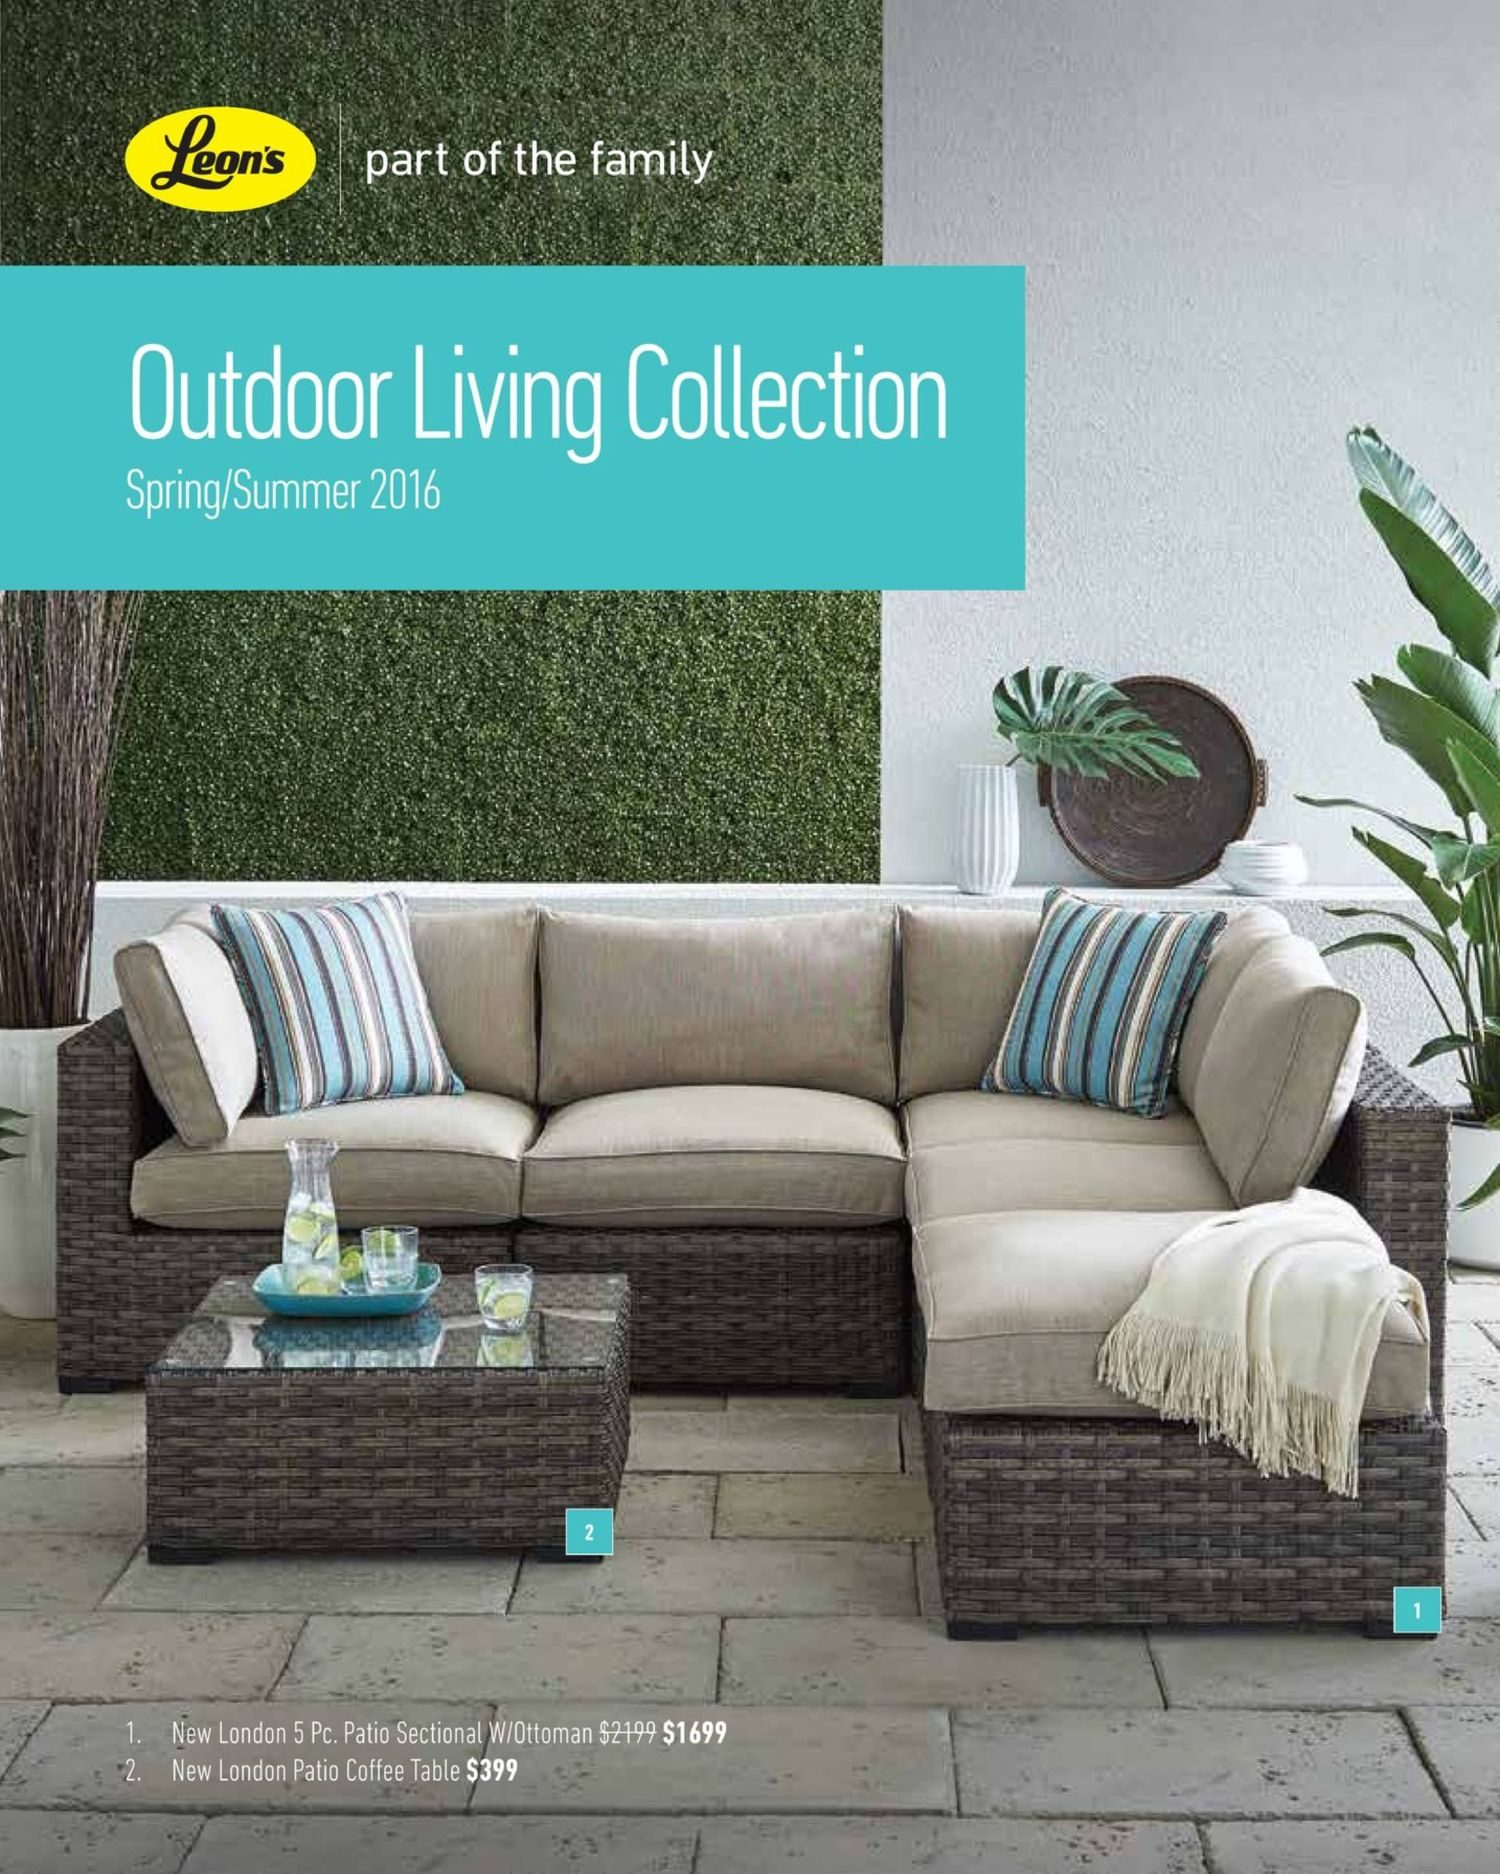 100 London Drugs Patio Furniture Leon U0027s Weekly Flyer Outdoor Living  Collection Spring Summer,11 - Great London Drugs Patio Furniture – Home Decor Ideas